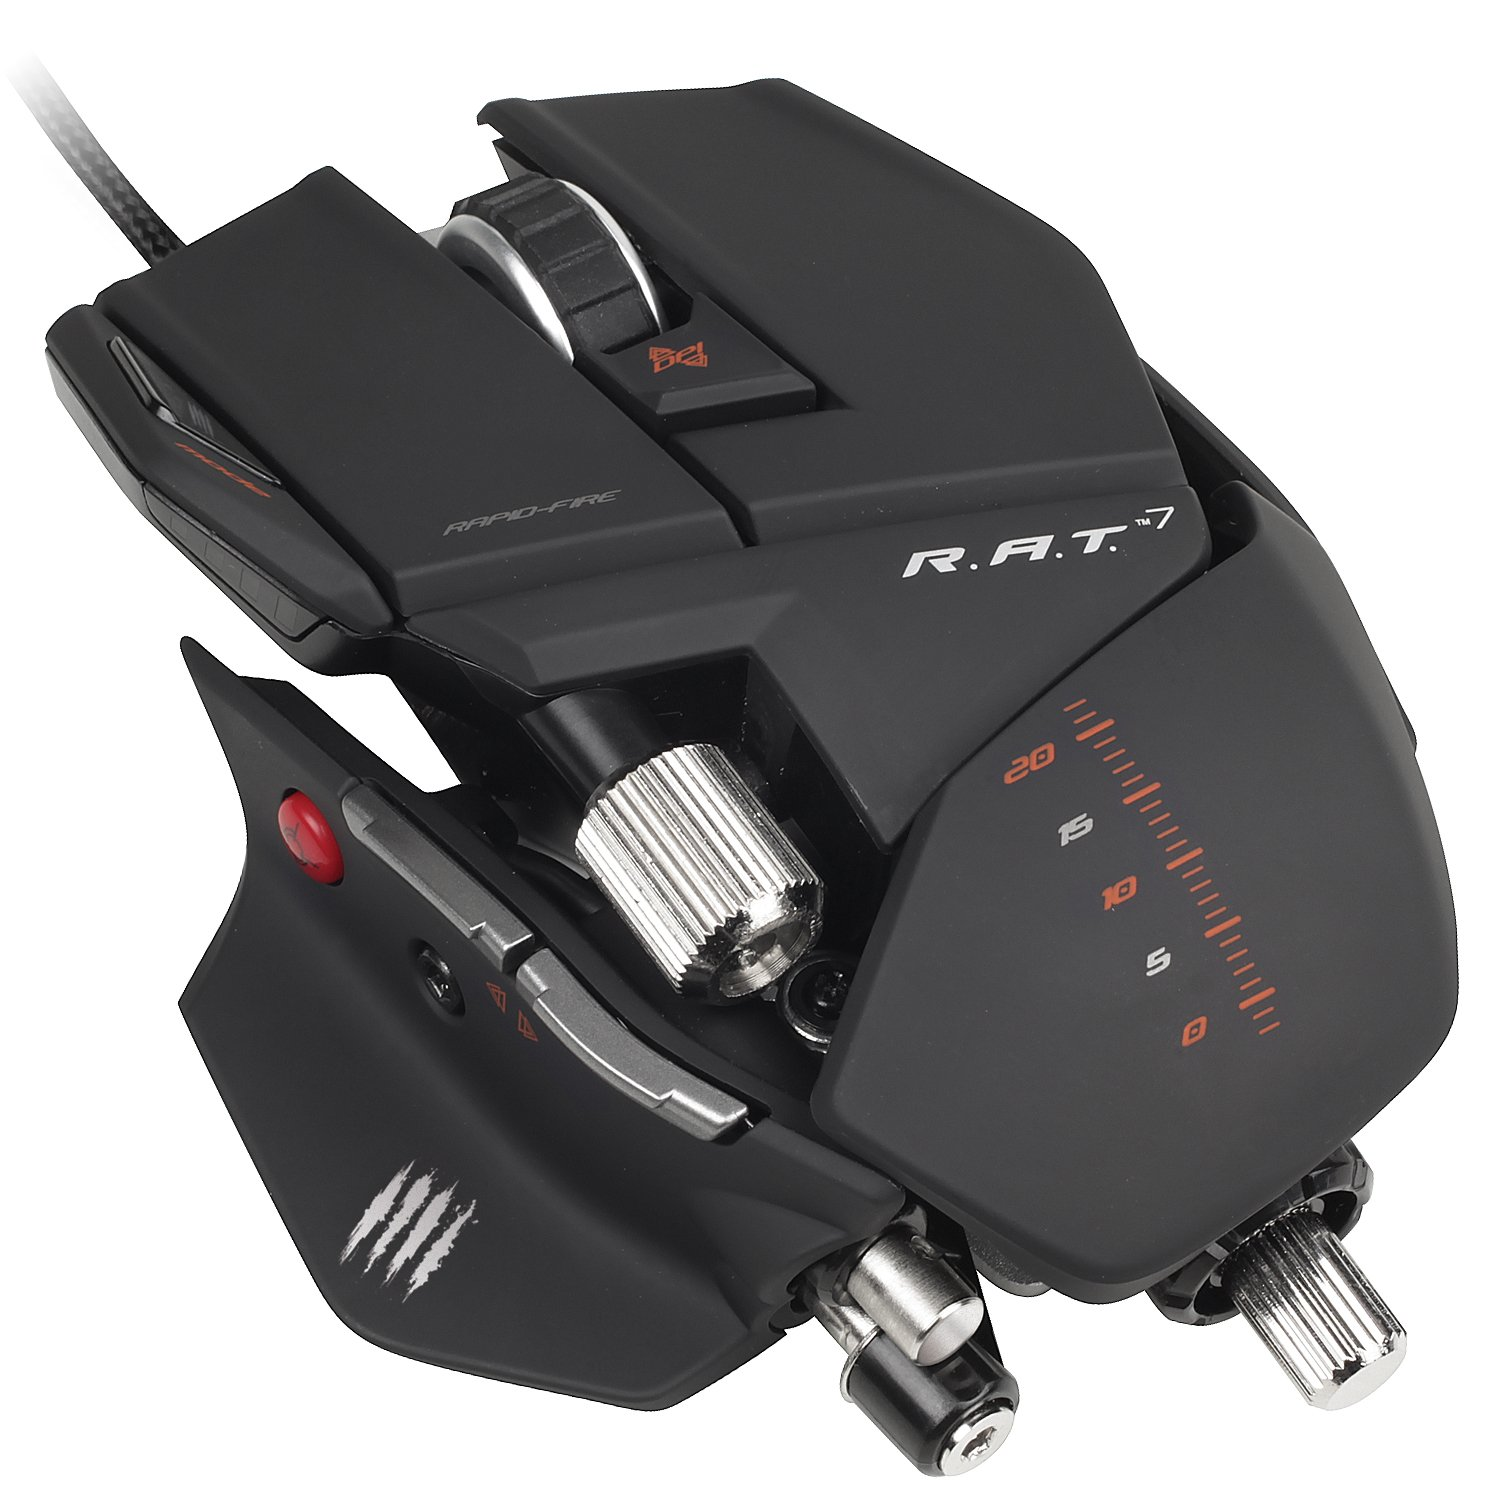 Mad Catz R.A.T.7 Gaming Mouse for PC and Mac by Mad Catz